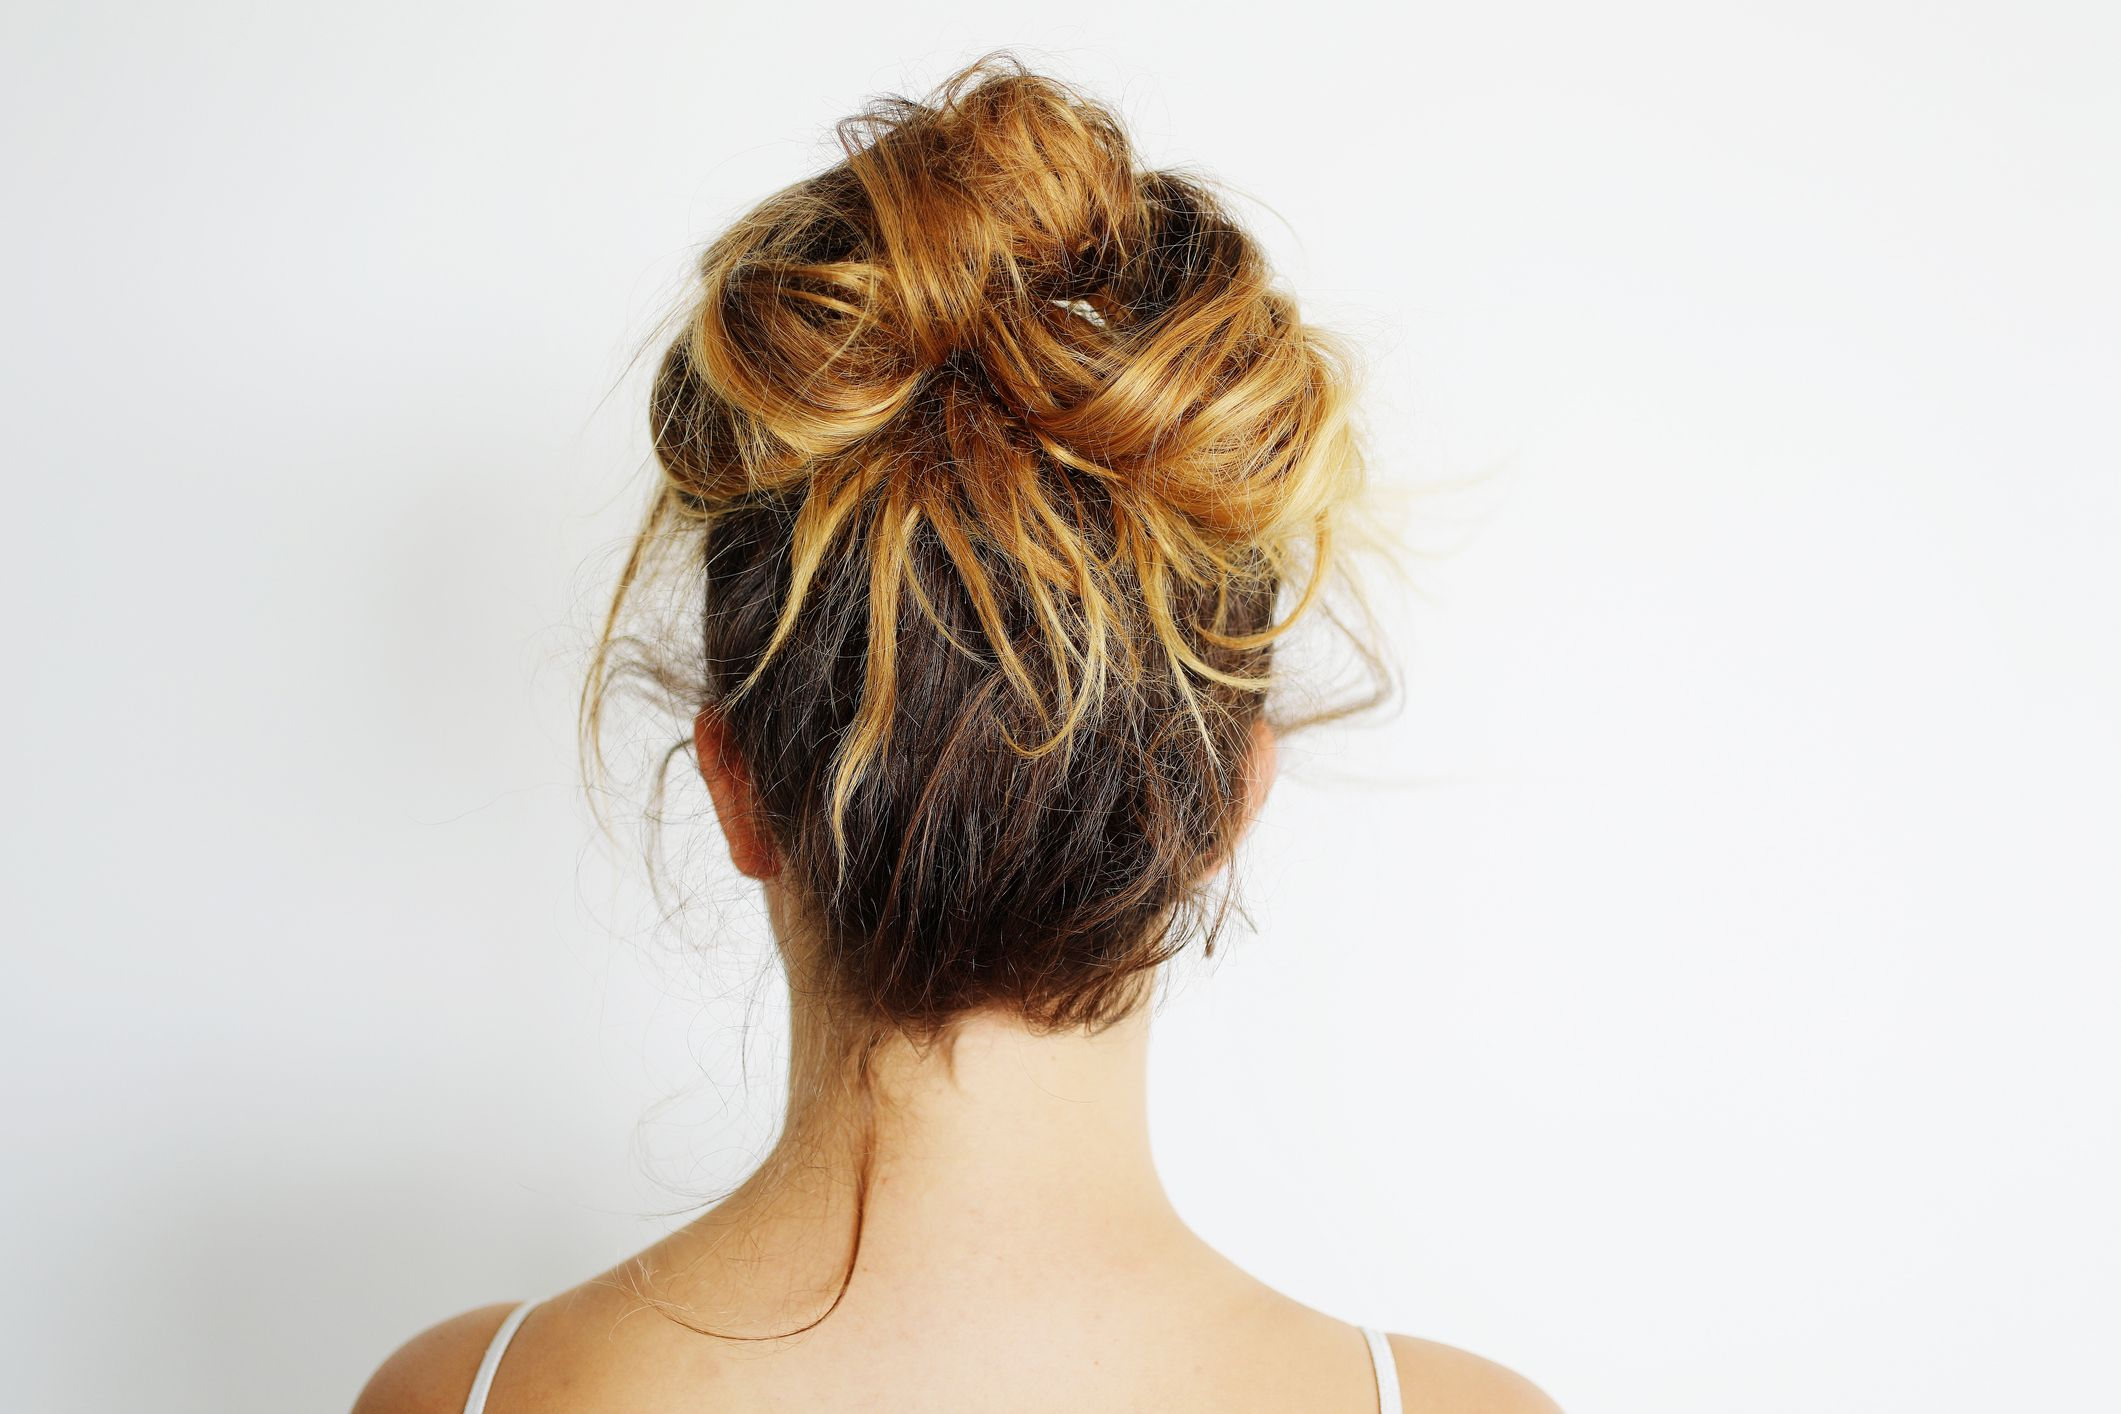 How To Do A Messy Bun Step By Step